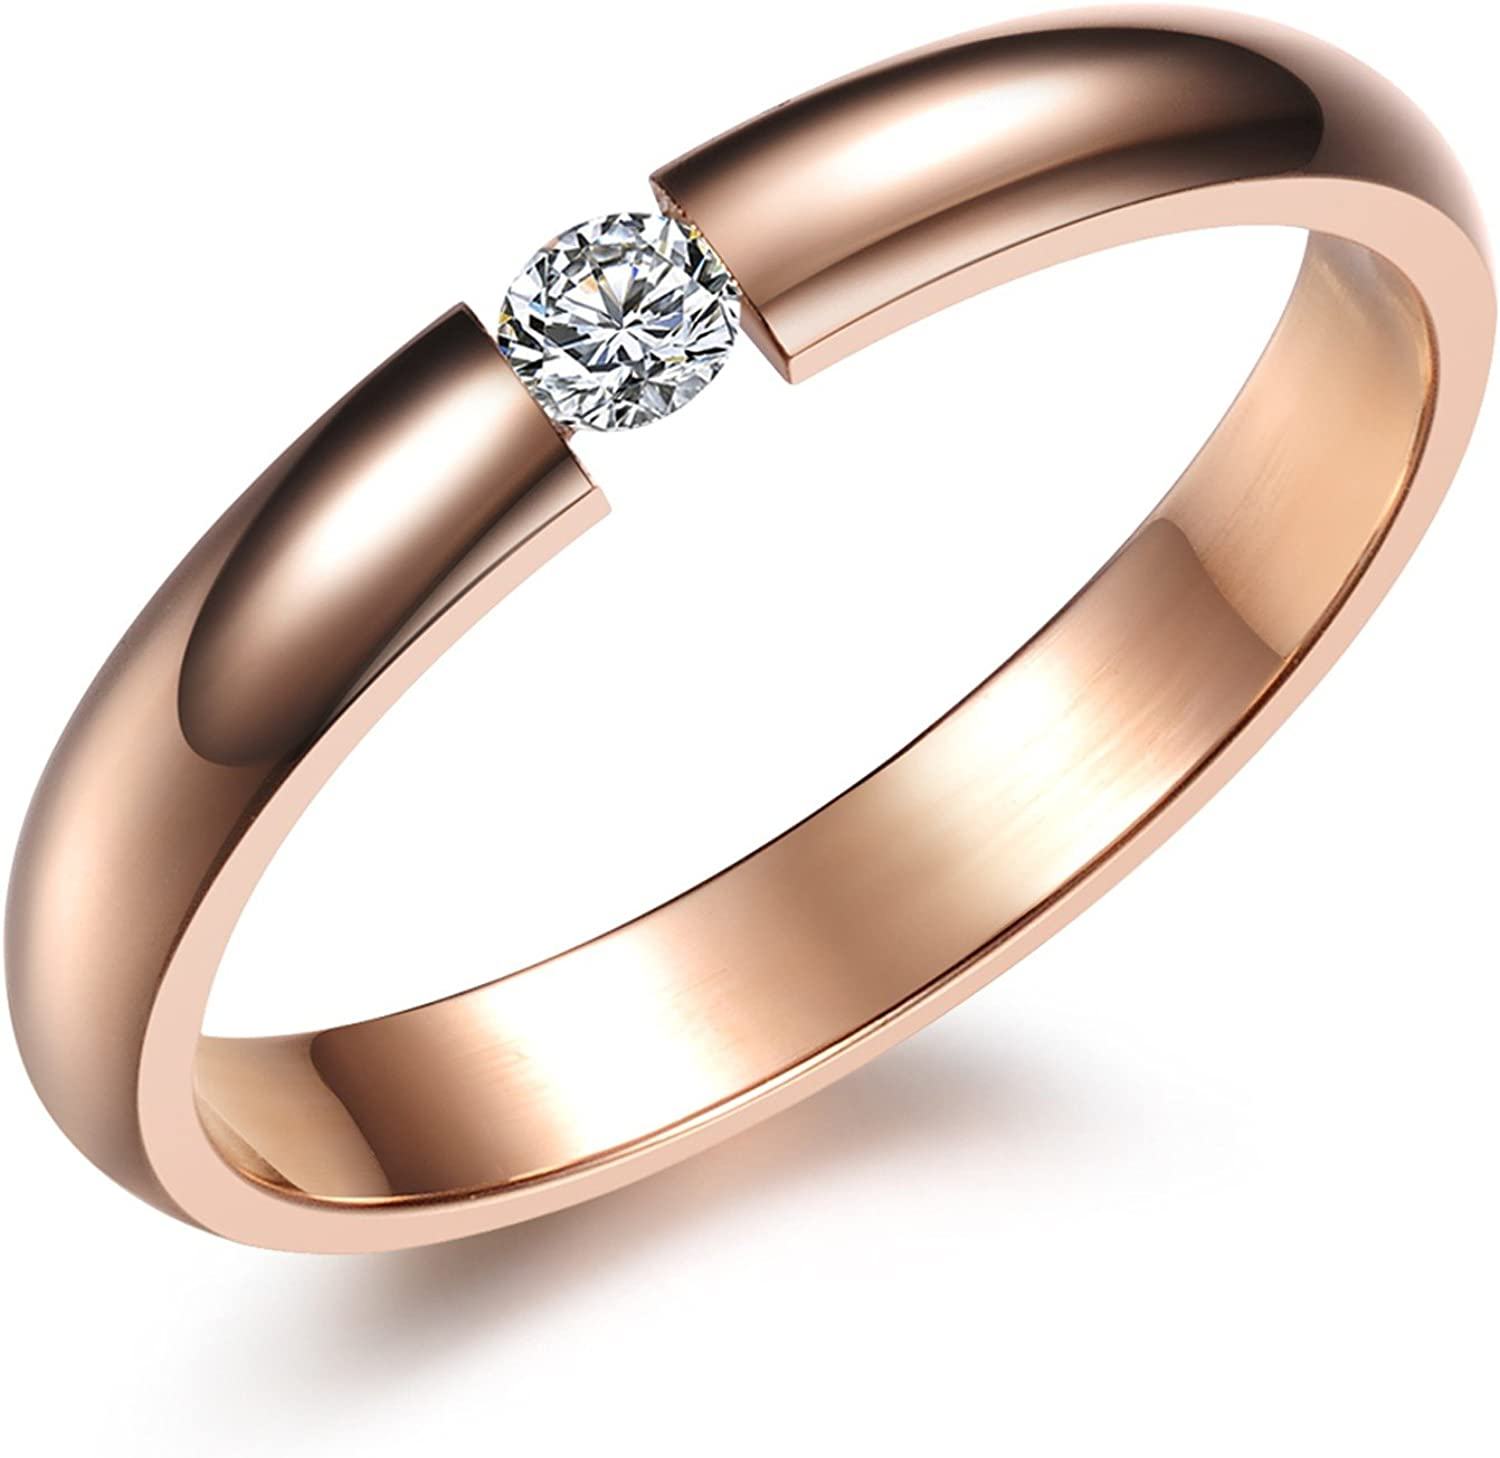 Lary Jewelry Girls Pretty 18K Rose Gold Plated Stainless Steel Round Cut CZ Best Promise Rings